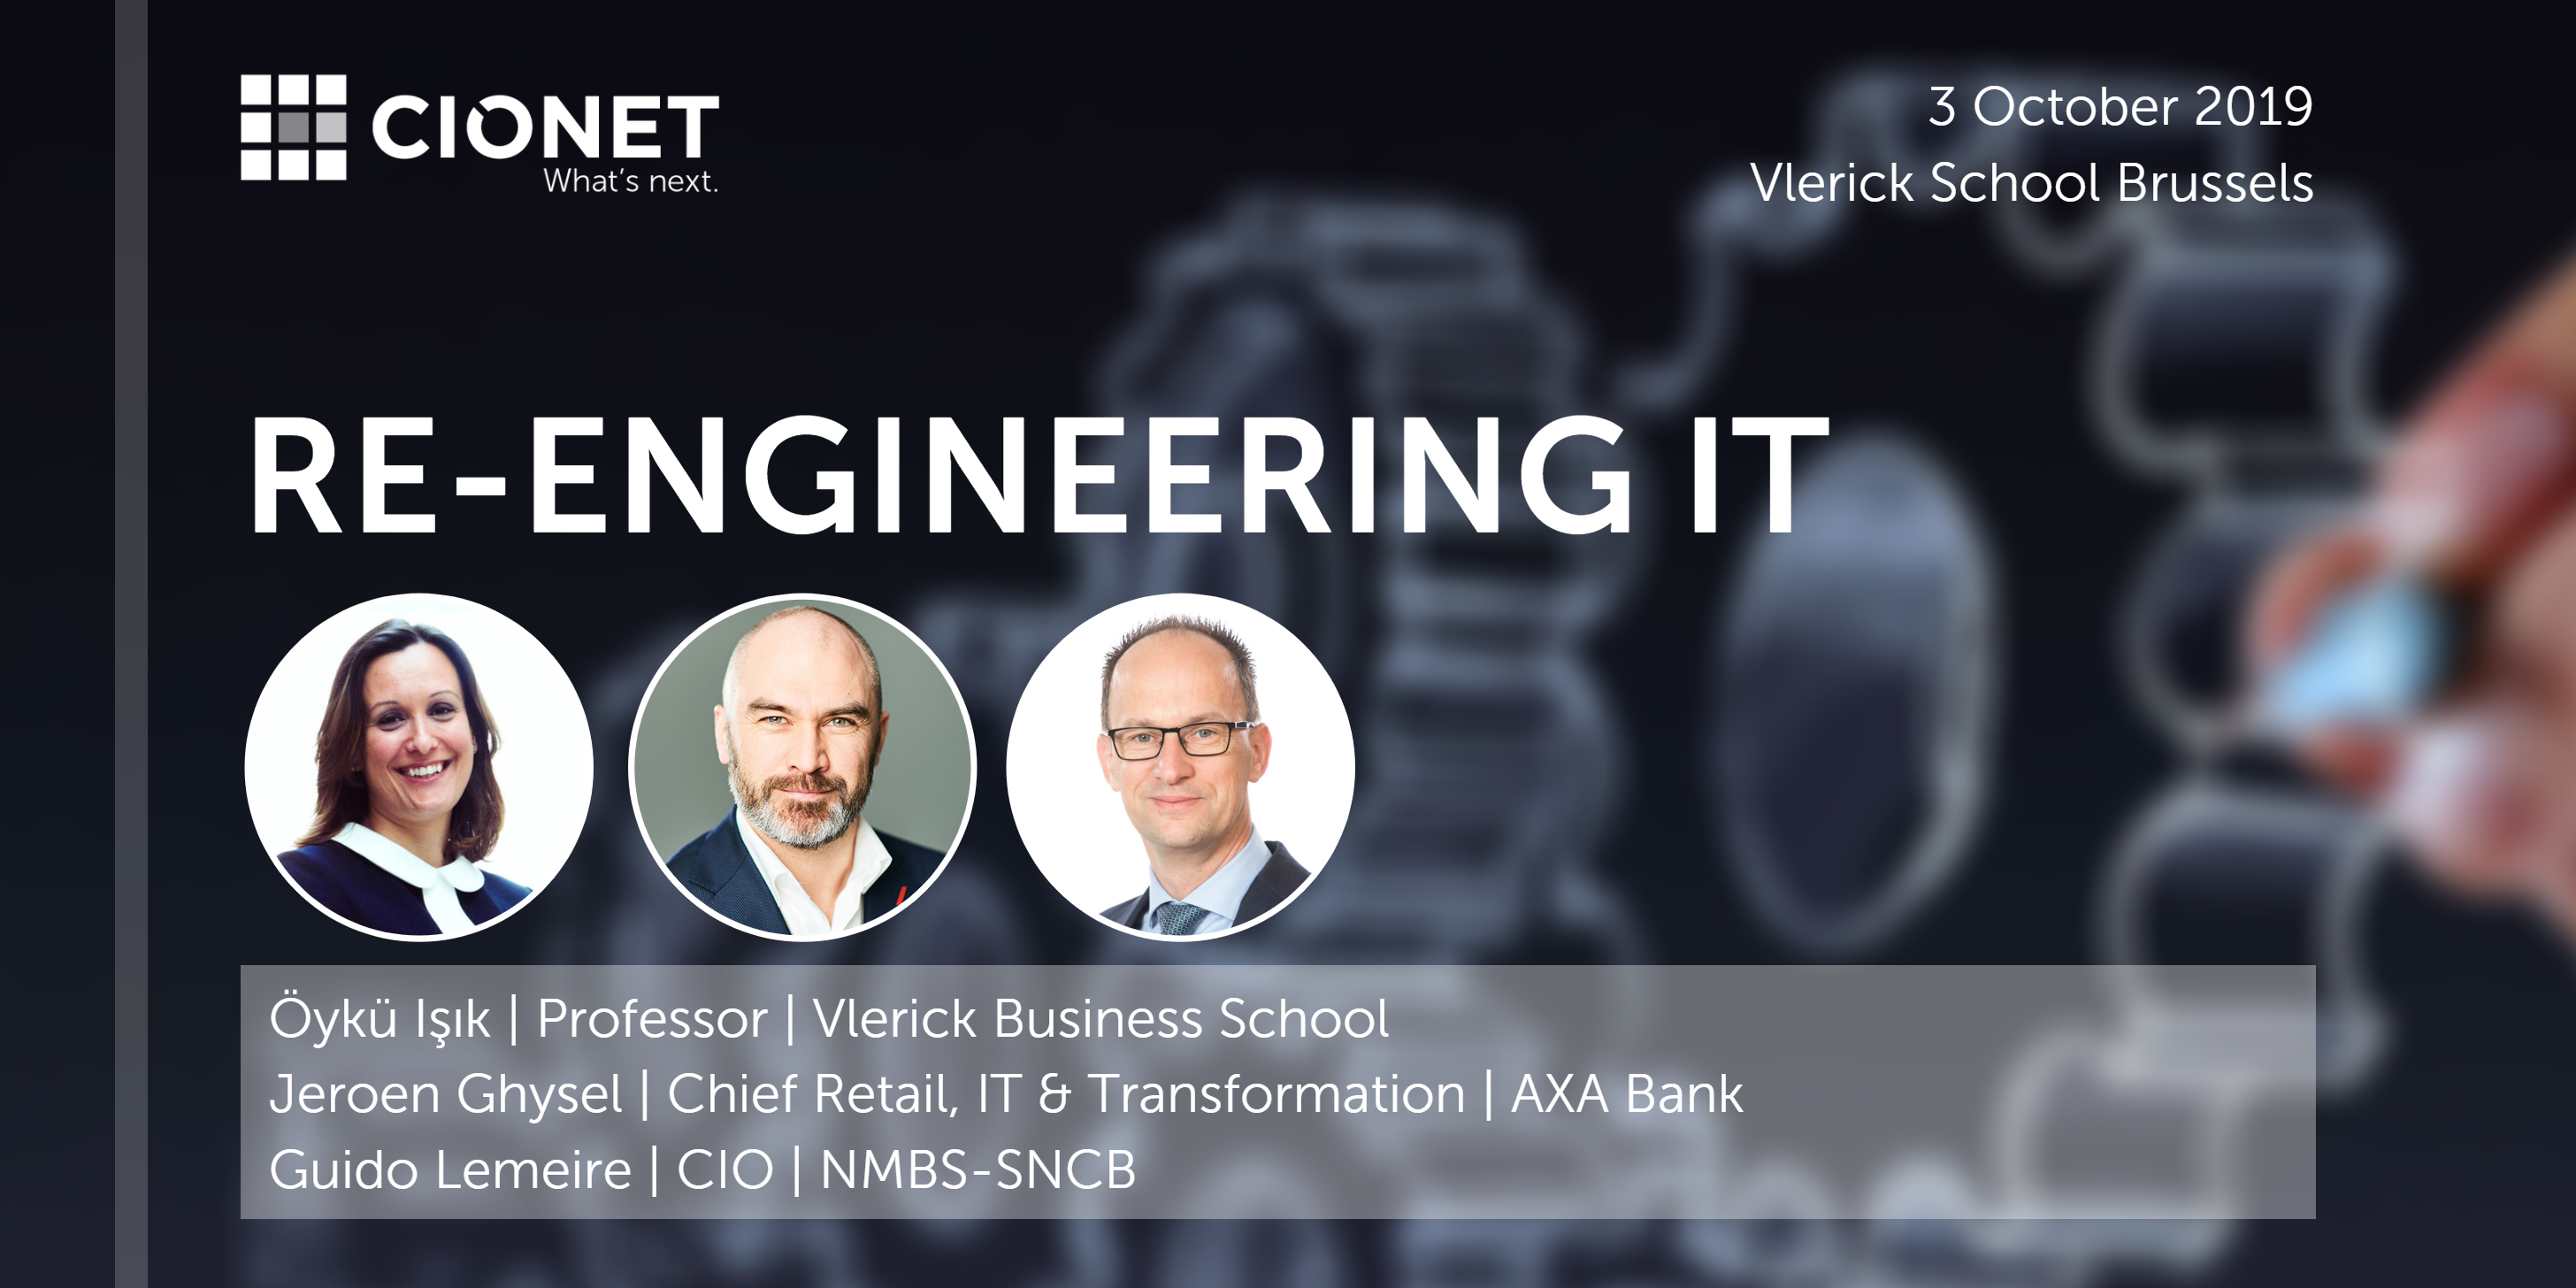 BE20191128 - re-engineering IT - v4 - HD